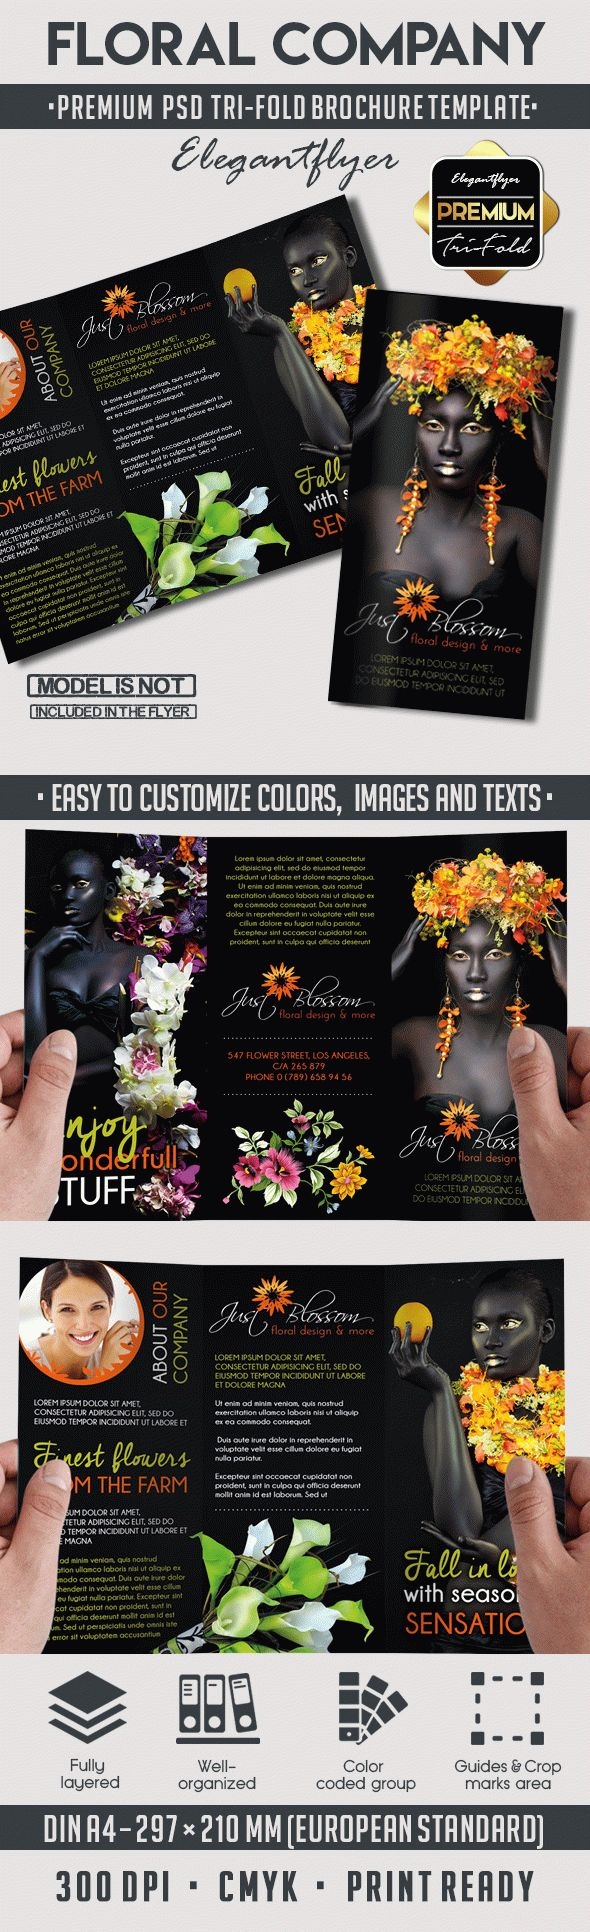 Tri-Fold PSD Brochure for Floral Company